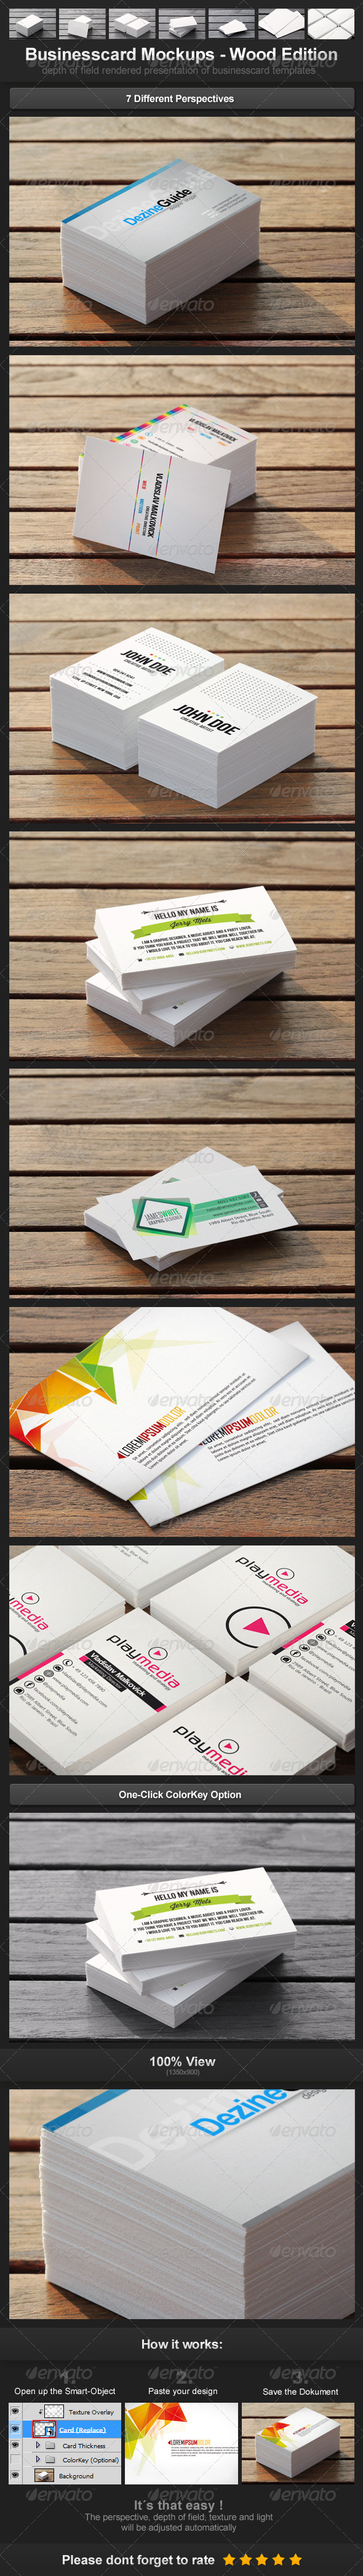 GraphicRiver Businesscard Mockups Wood Edition 3392088